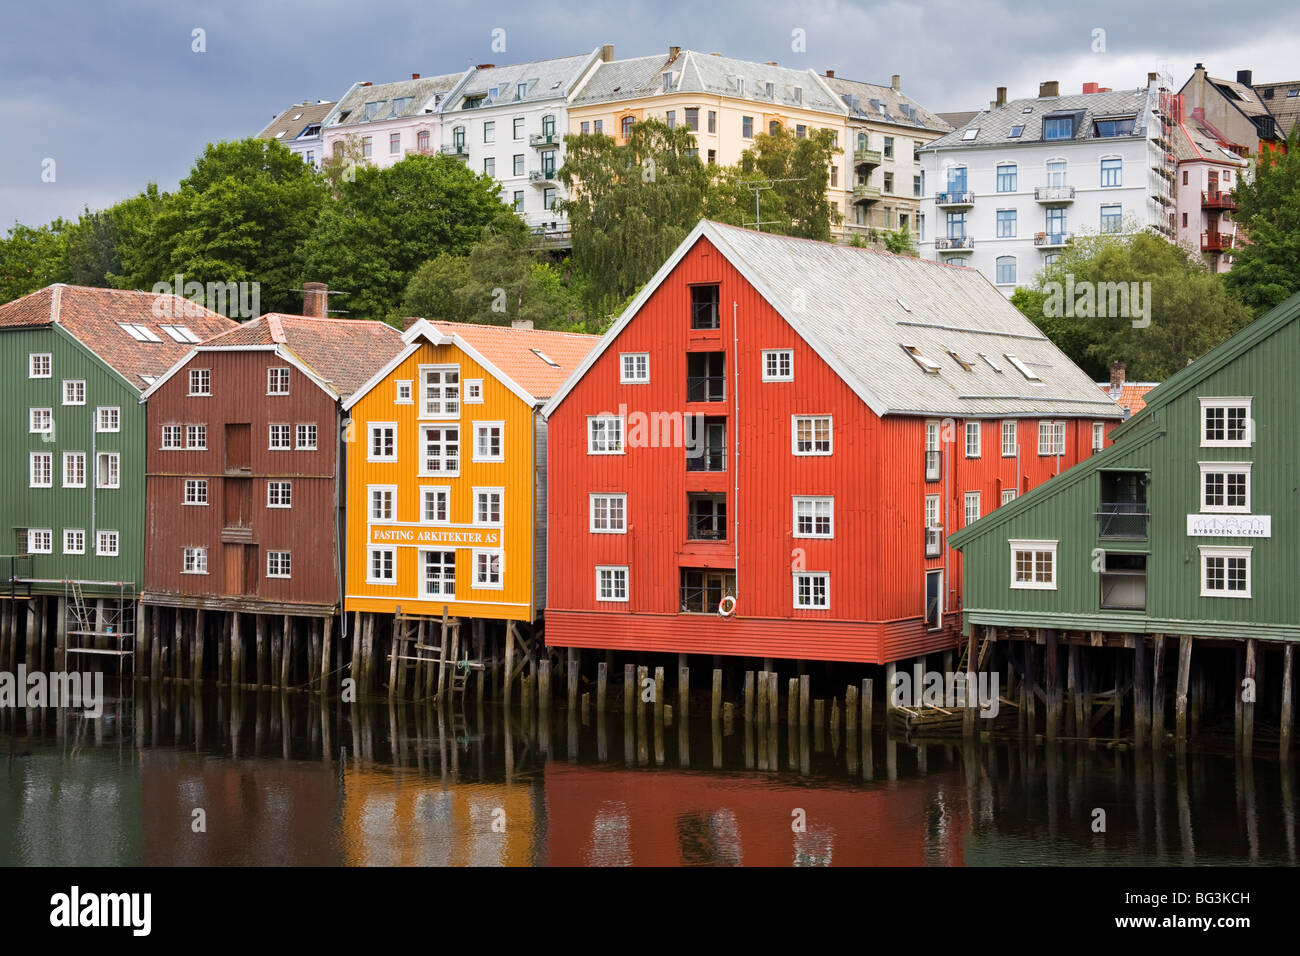 Warehouses on Bryggen waterfront in Old Town District, Trondheim, Nord-Trondelag Region, Norway, Scandinavia, Europe - Stock Image